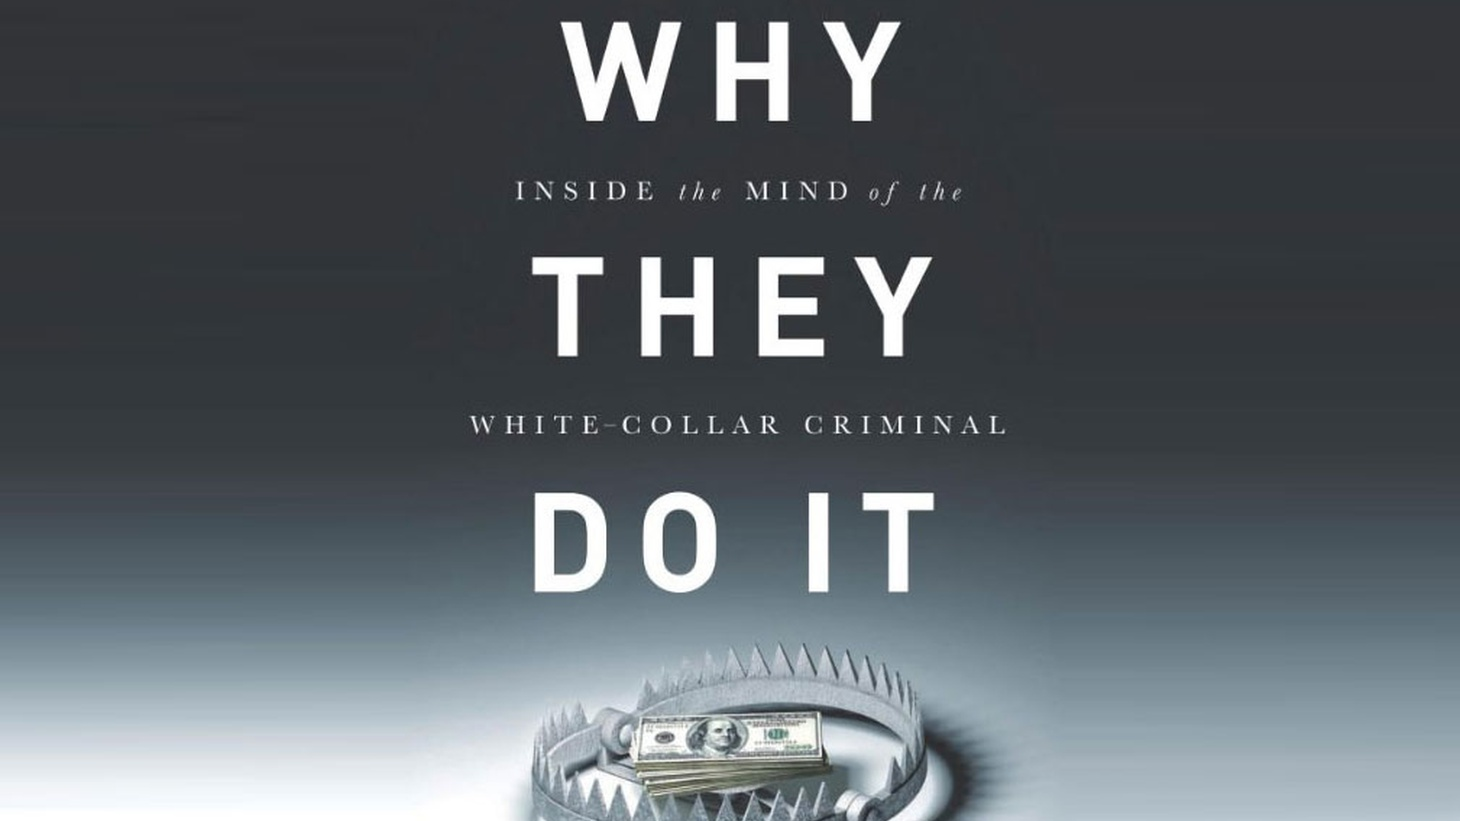 Insider trading, fraud, embezzlement and bribery these are crimes often perpetrated by those at the highest rungs of the corporate ladder, by top earners you wouldn't think would need to break the law to get ahead. Why do they take the risk?